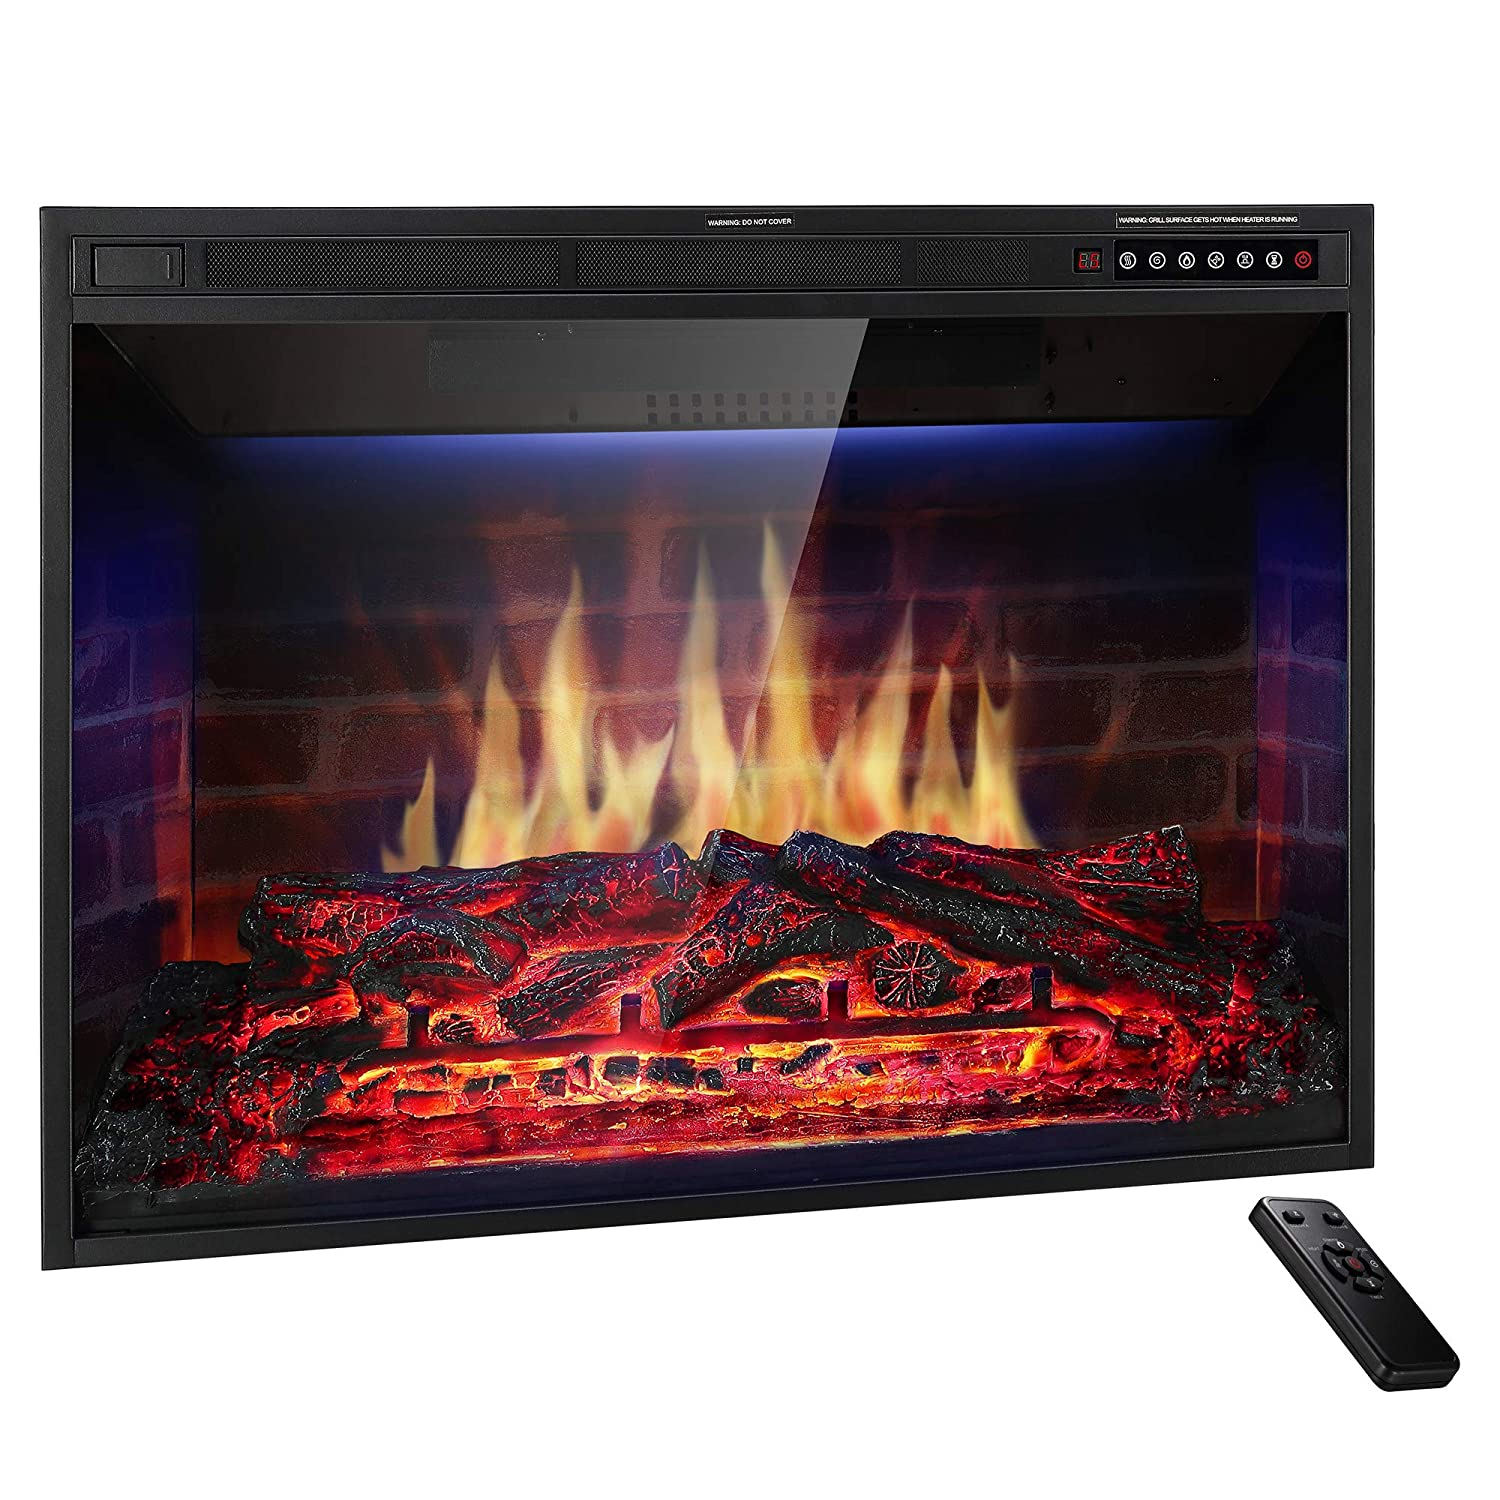 JAMFLY 33 Electric Fireplace Insert Narrow Border Design Freestanding Heater with Multicolor Flames, Touch Screen, Timer, and Remote Control, 1500w, Black